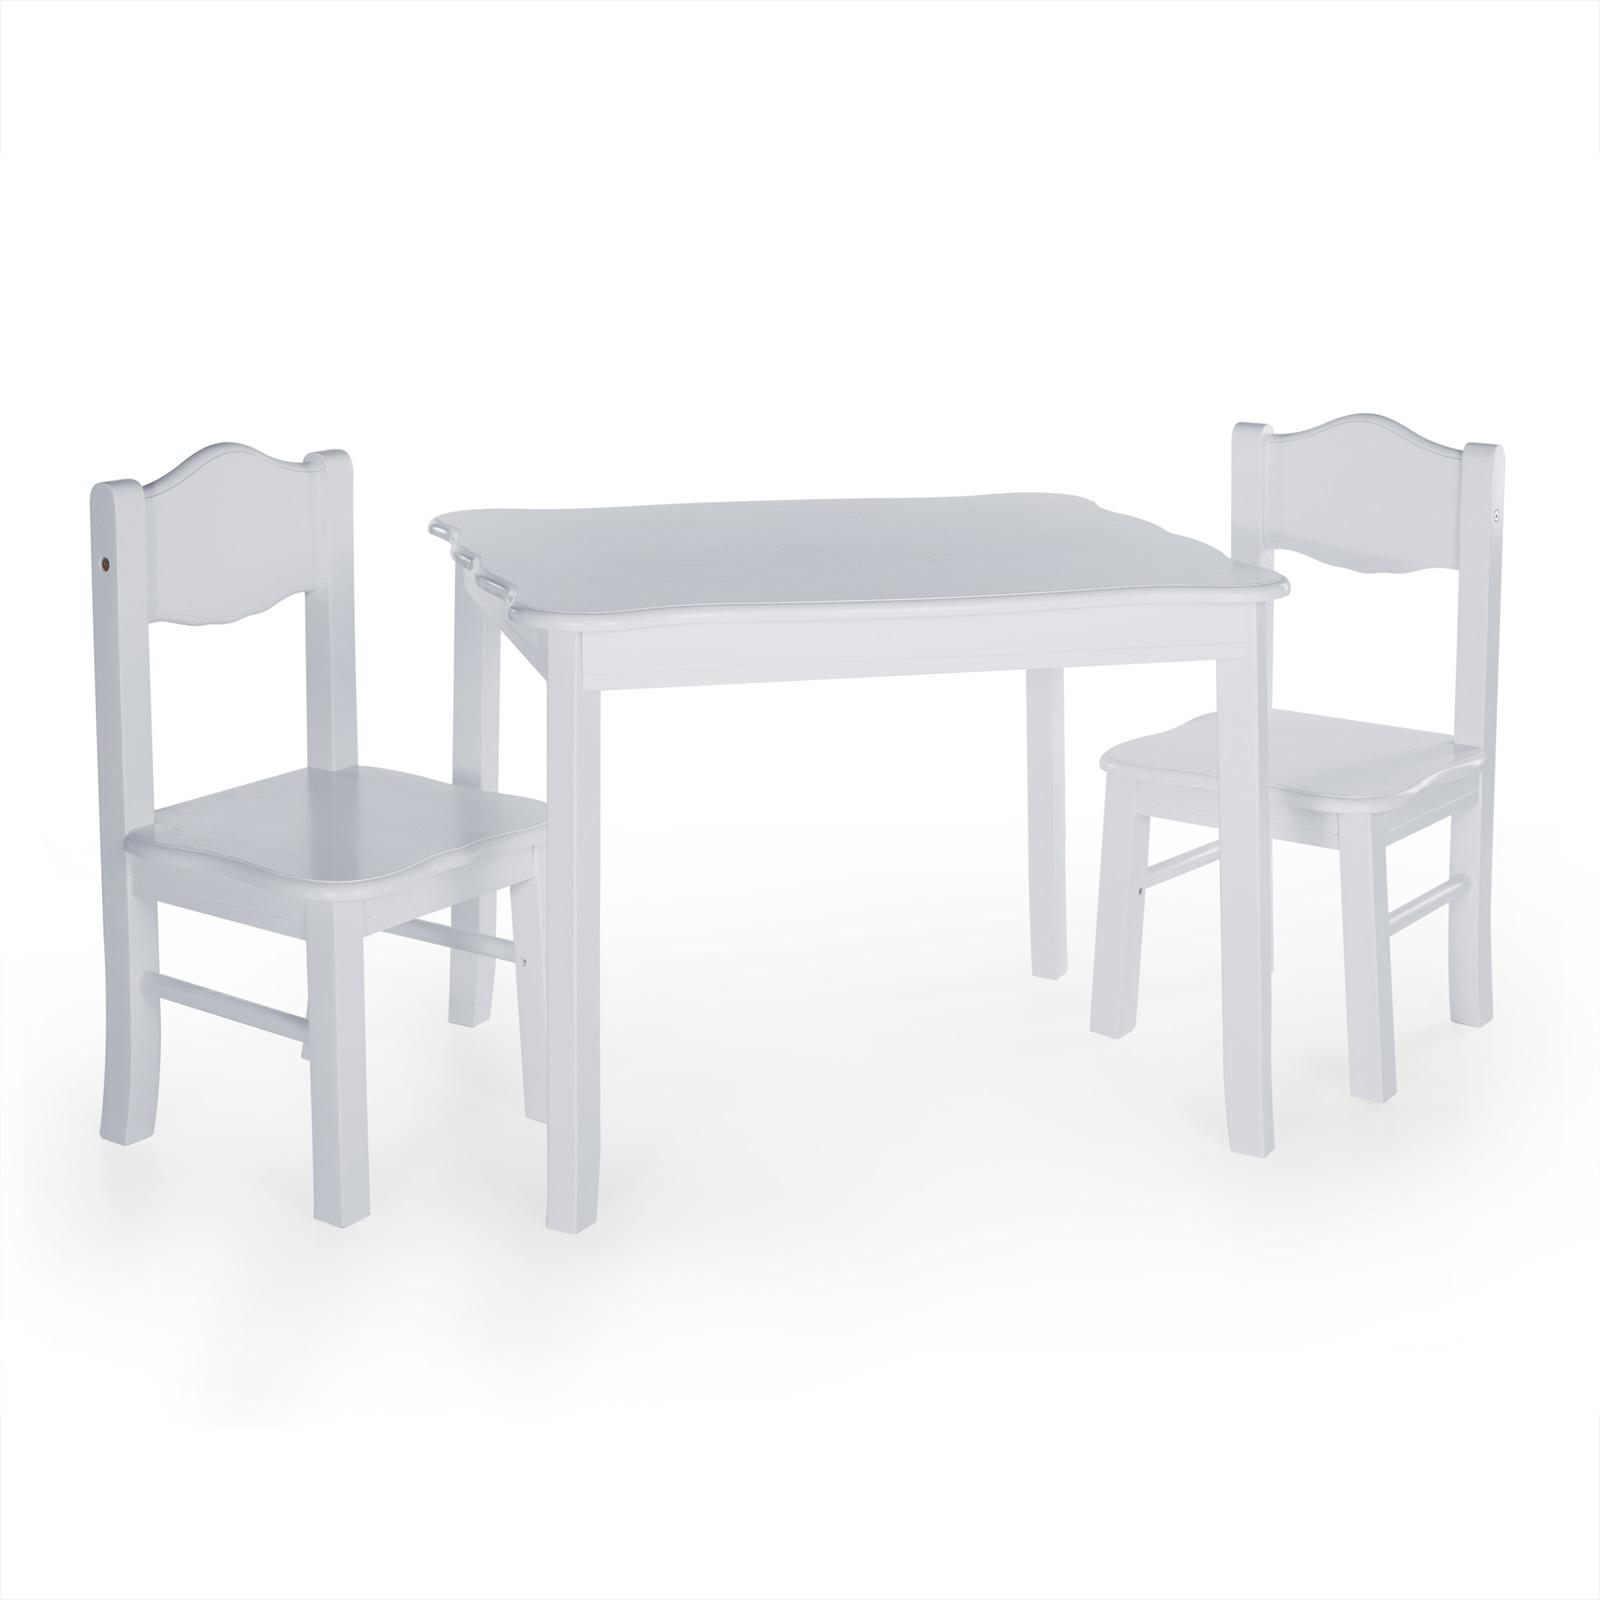 Guidecraft Classic Wavy Table and Chairs - Gray - ID912-2